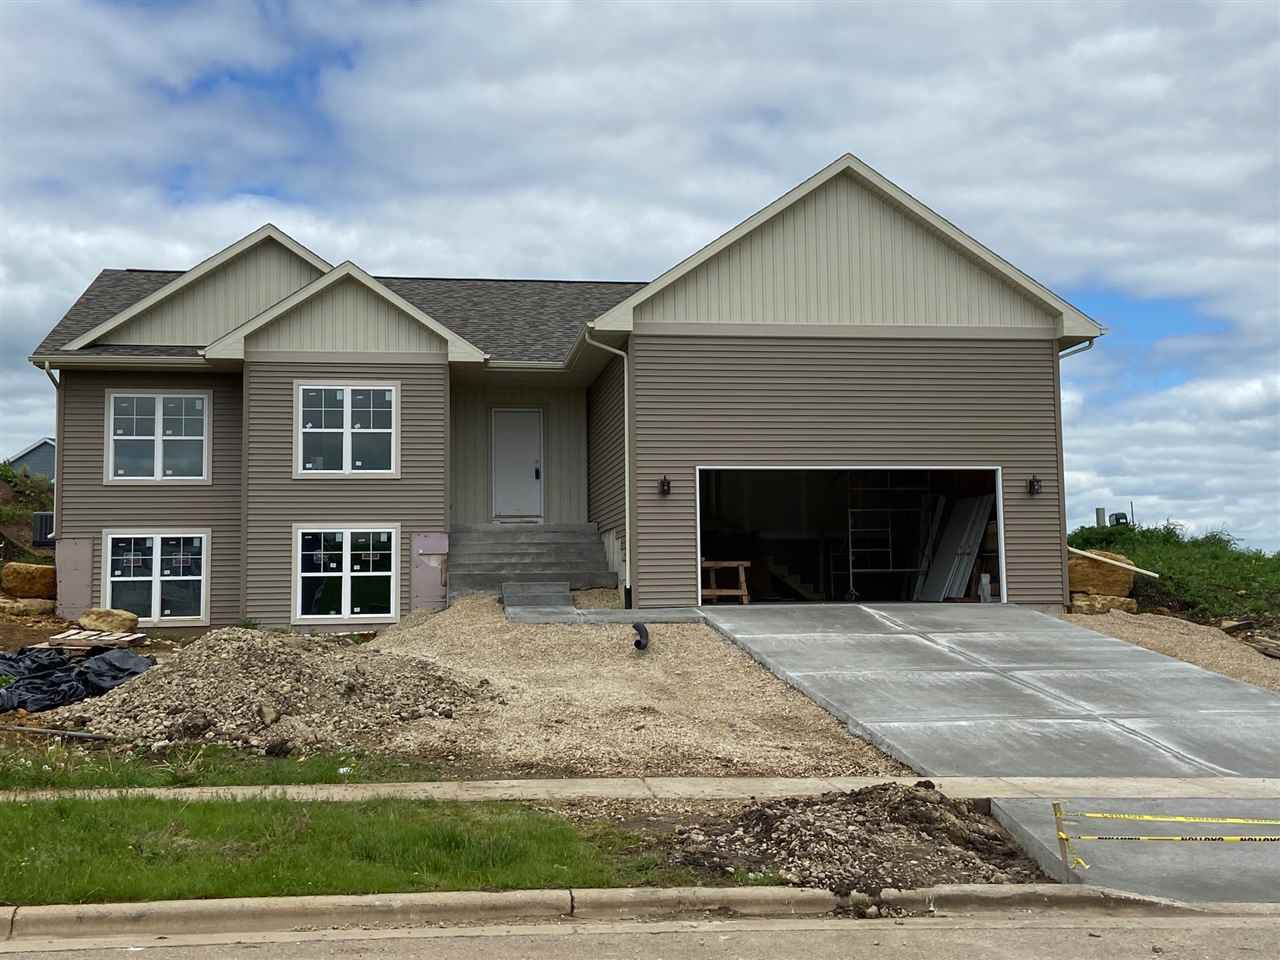 1912 Three Wood Dr, Mount Horeb, WI 53572 - #: 1878299